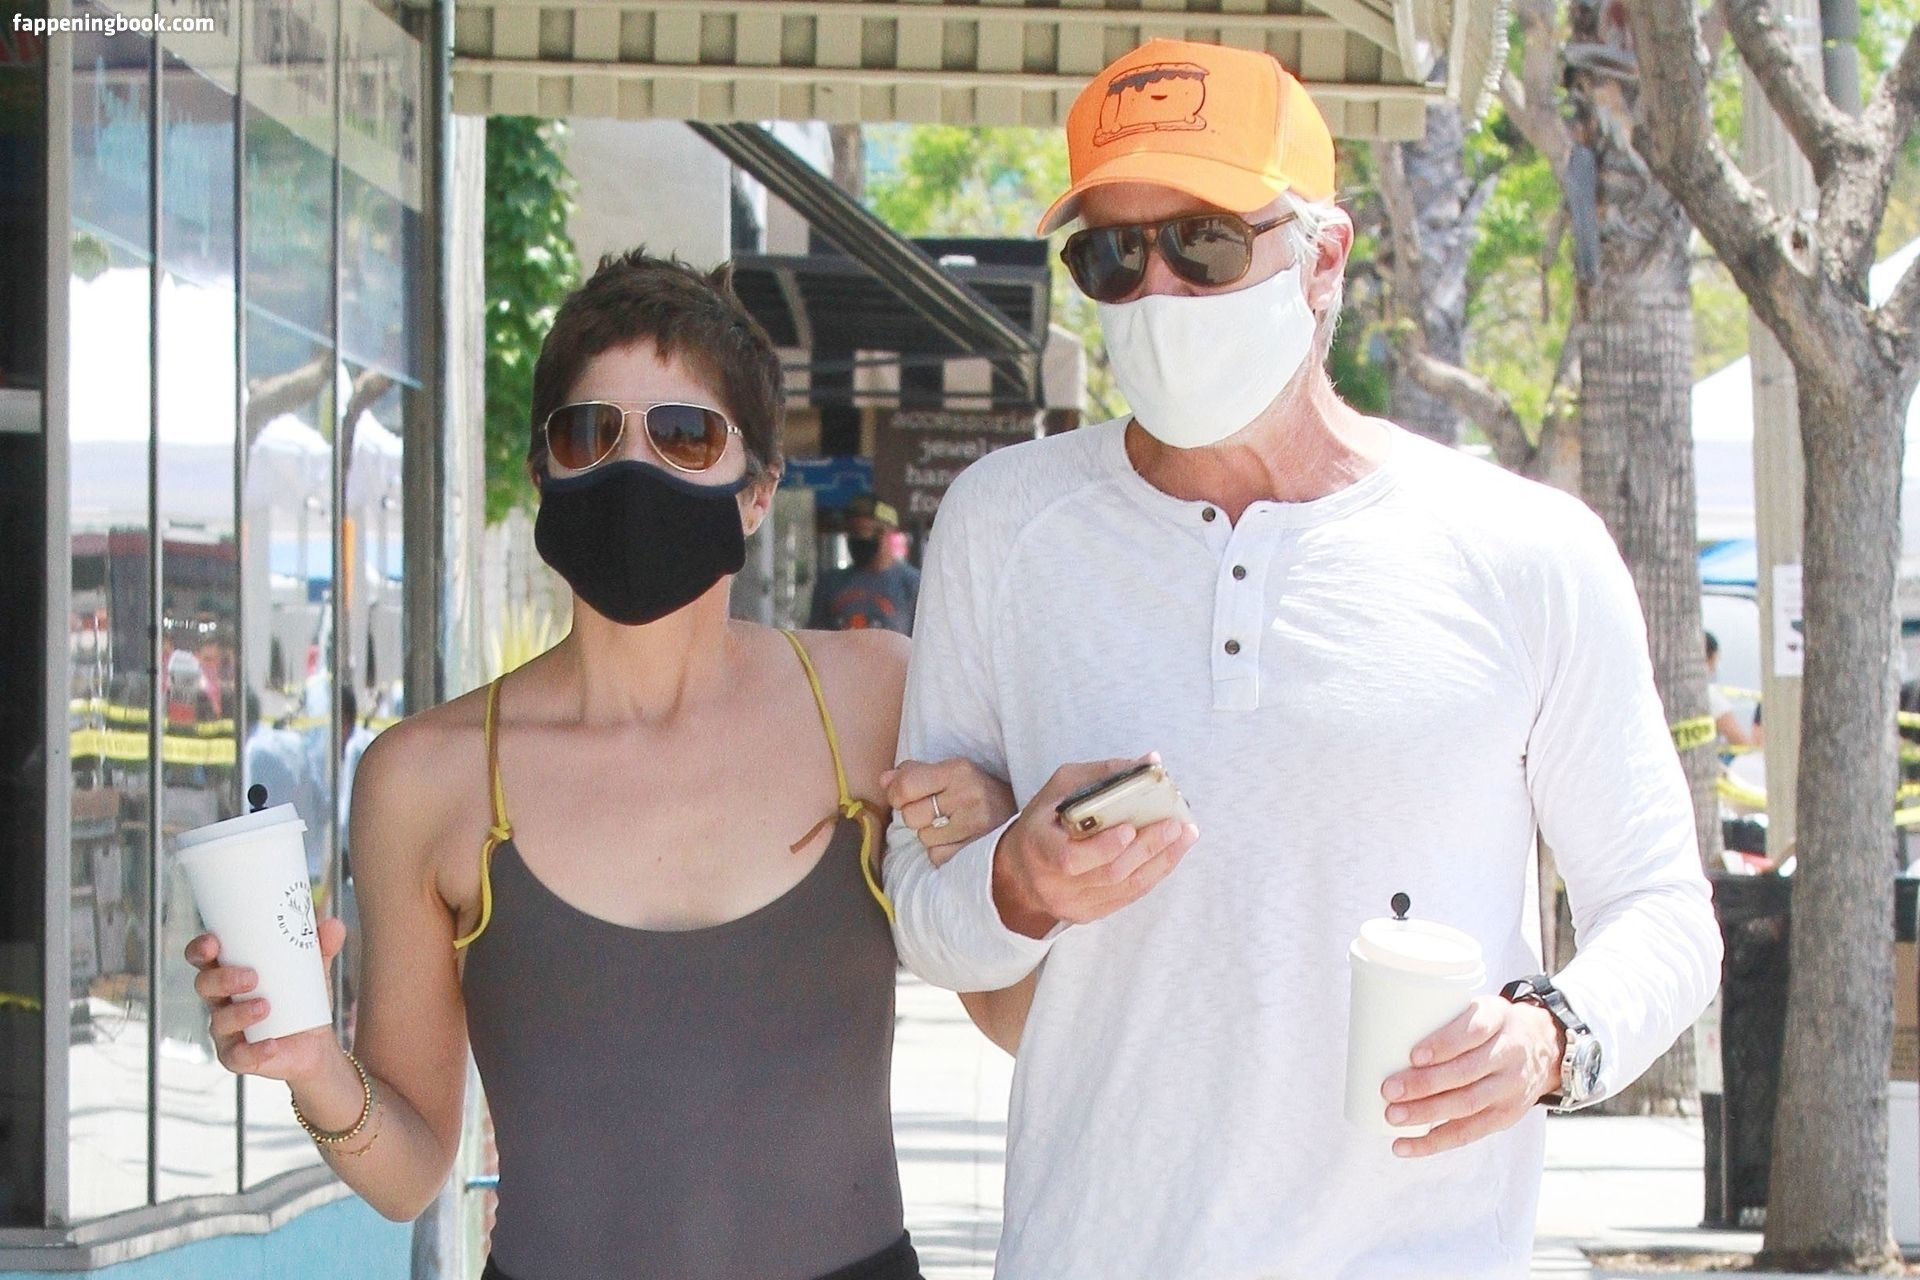 The Sexiest Selma Blair Pics EVER, Ranked (Page 2)